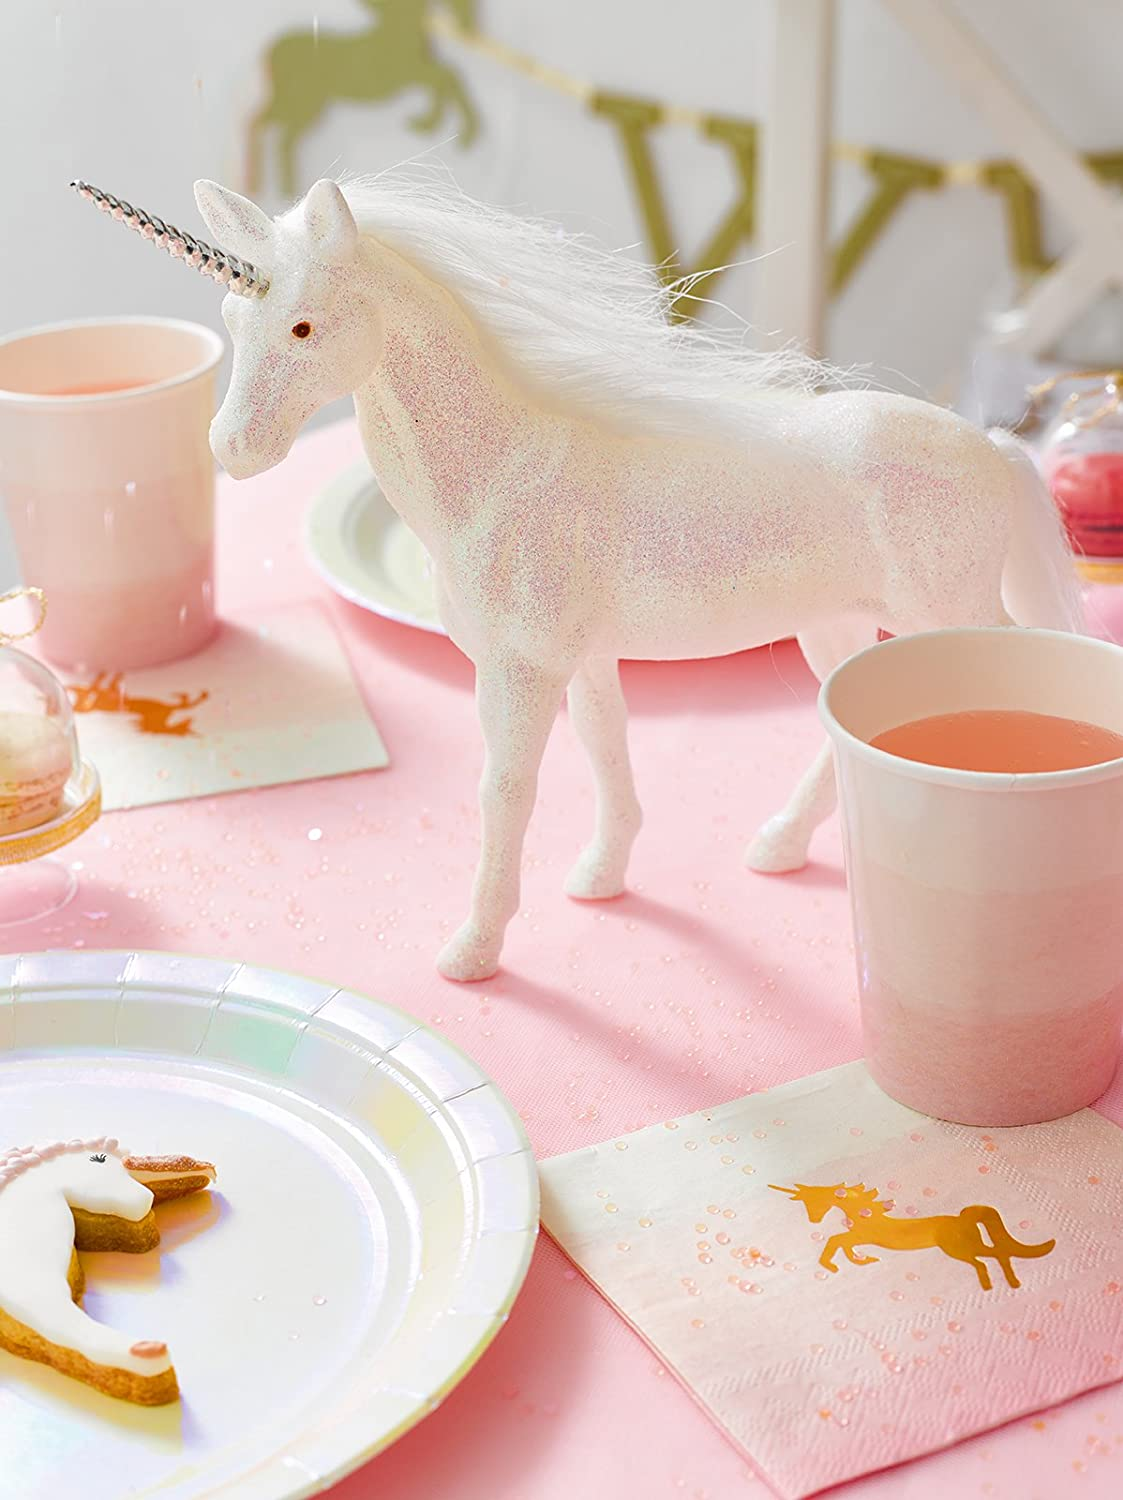 Iridescent Glitter Talking Tables Unicorn Party Supplies Unicorn Unicorn Prop For Table